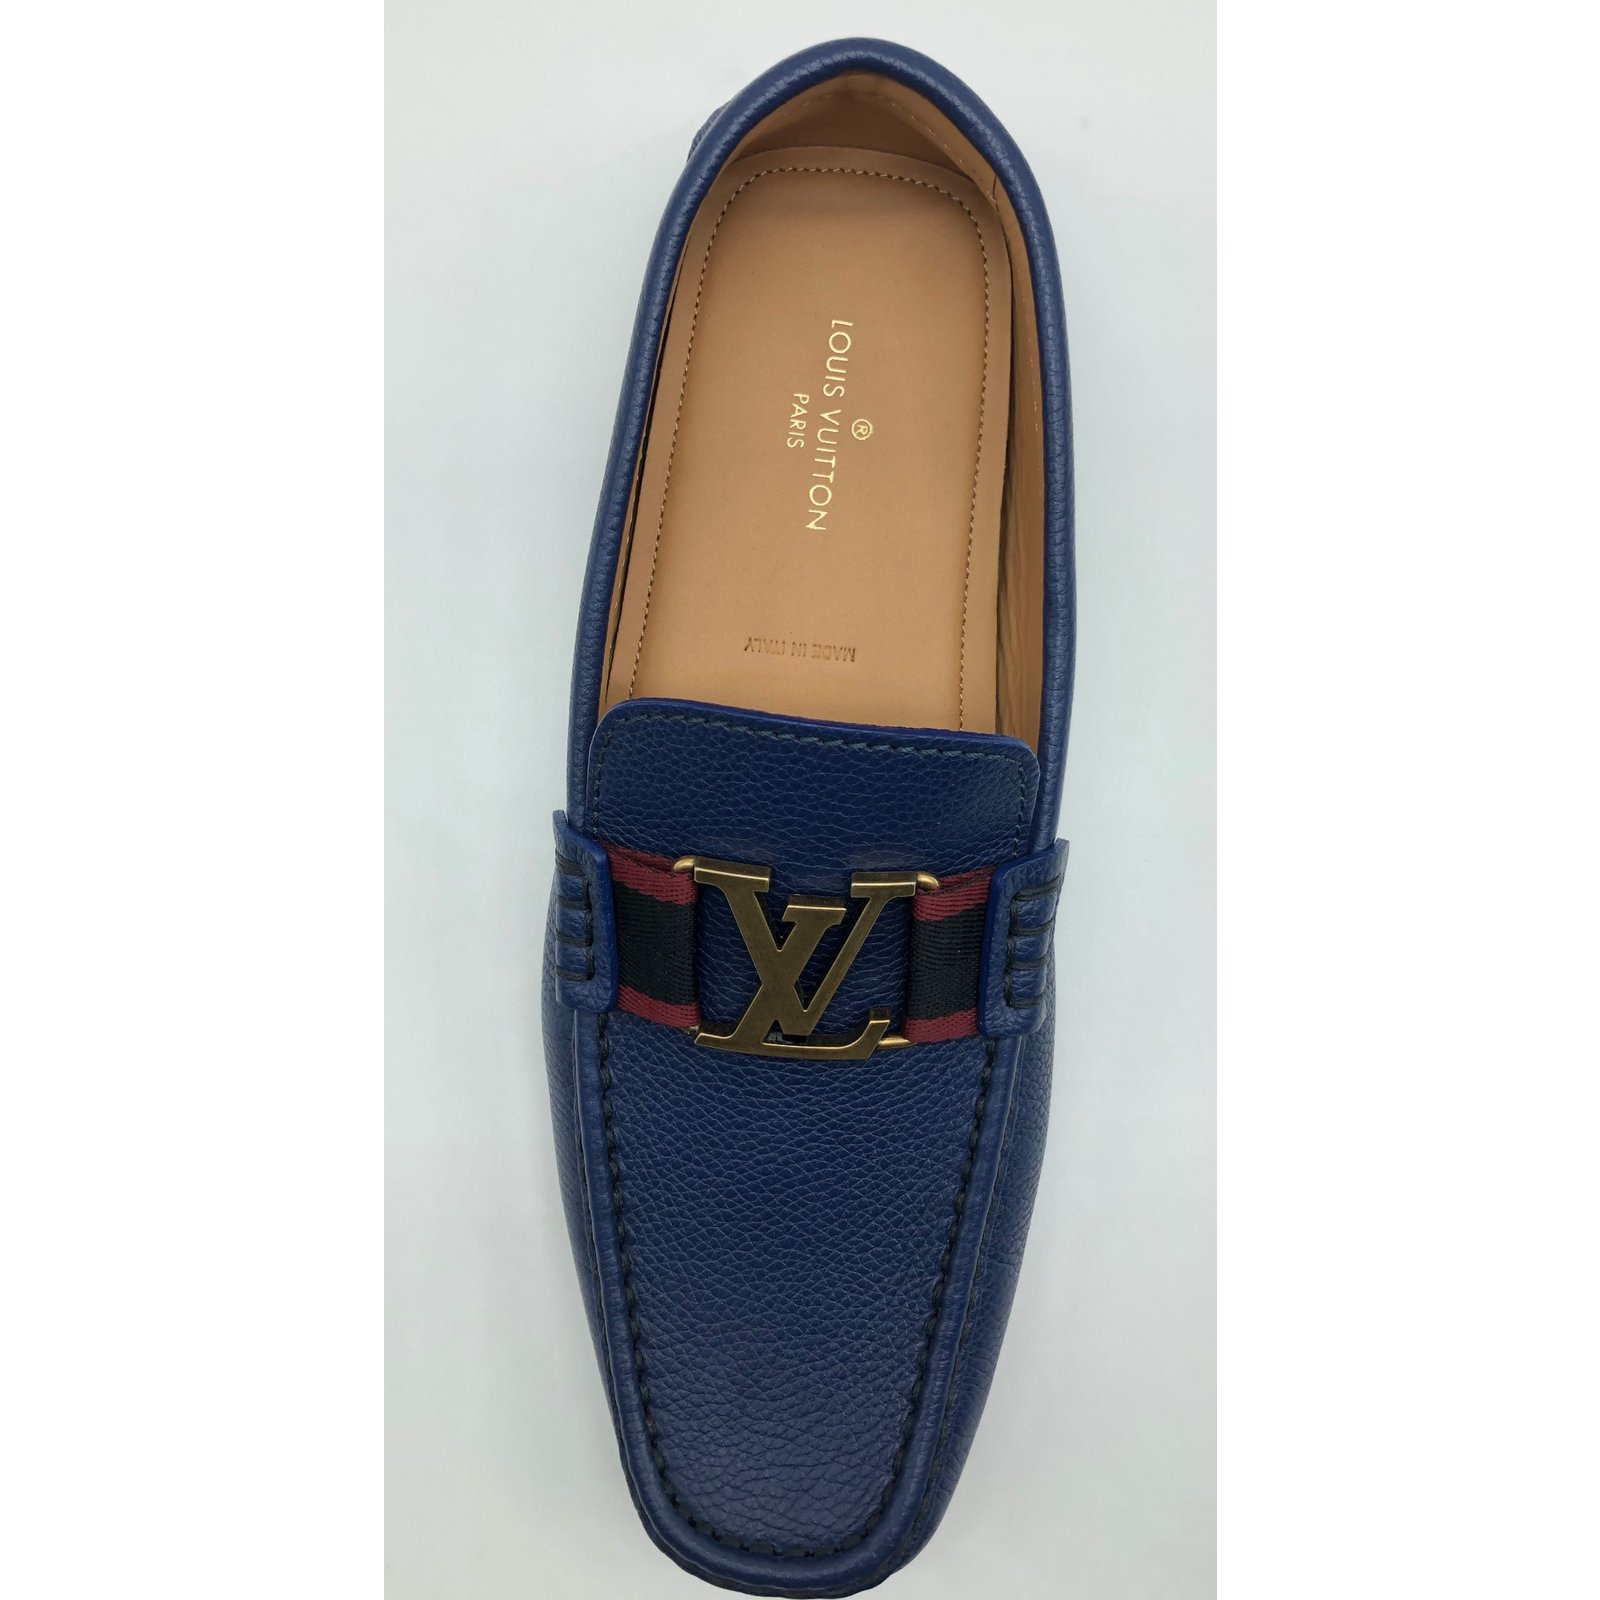 0d61cda94af5 Louis Vuitton Louis Vuitton moccasins Monte Carlo model in navy grained  leather